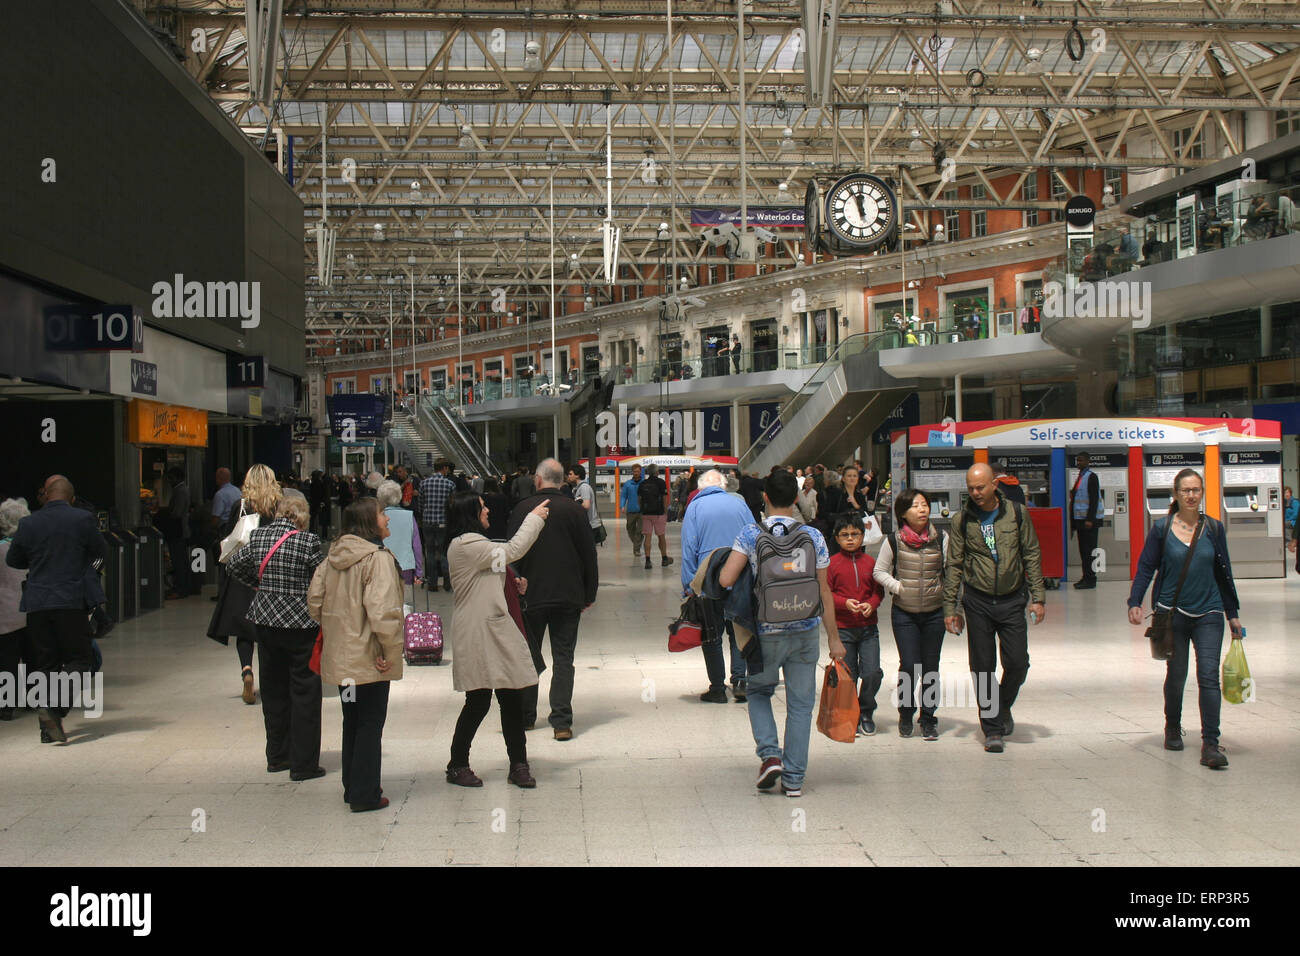 waterloo station concourse - Stock Image